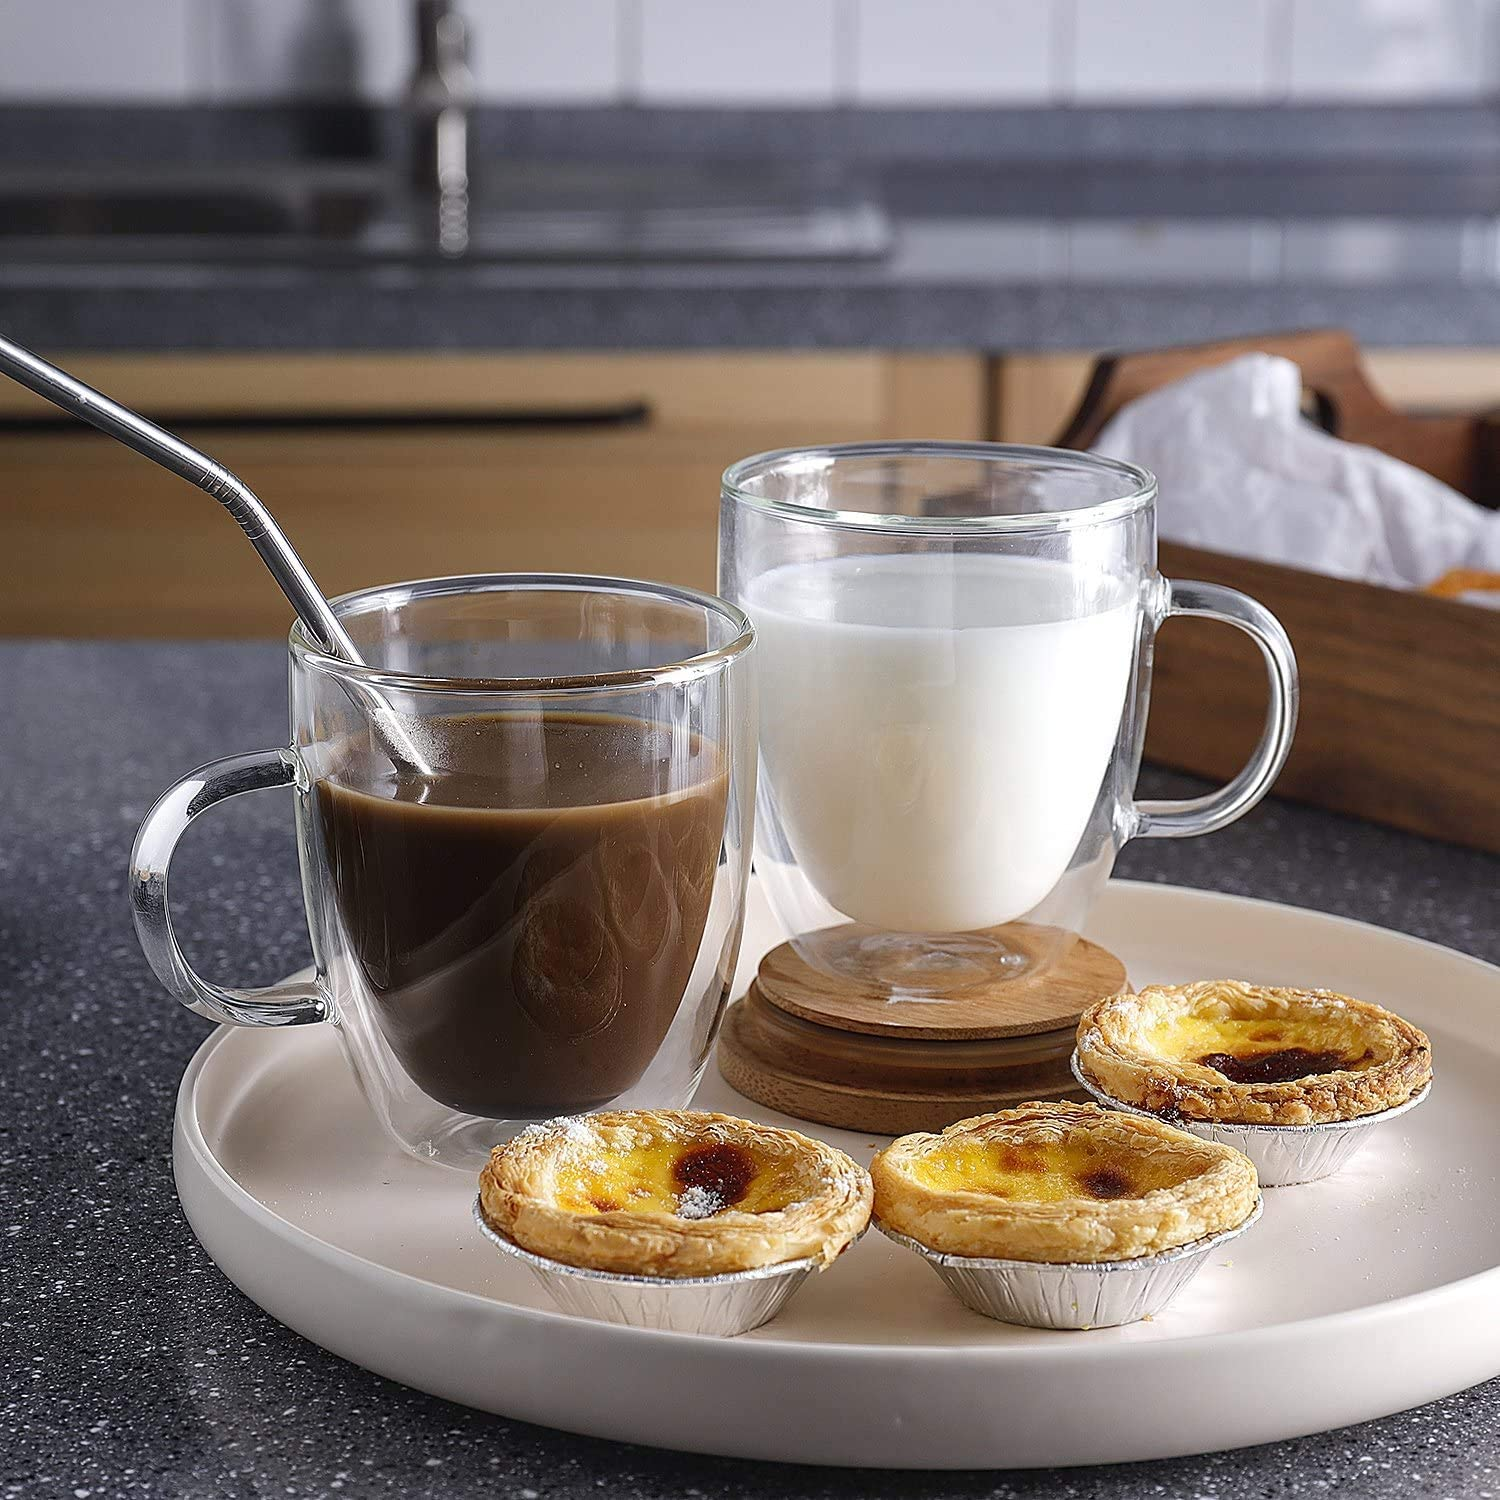 Set of 2 Espresso Double Wall Glass Coffee Cups 12 oz //350 ml Glass Coffee Mug with Handle Americano. Coffee Glasses Cups for Cappuccino Latte